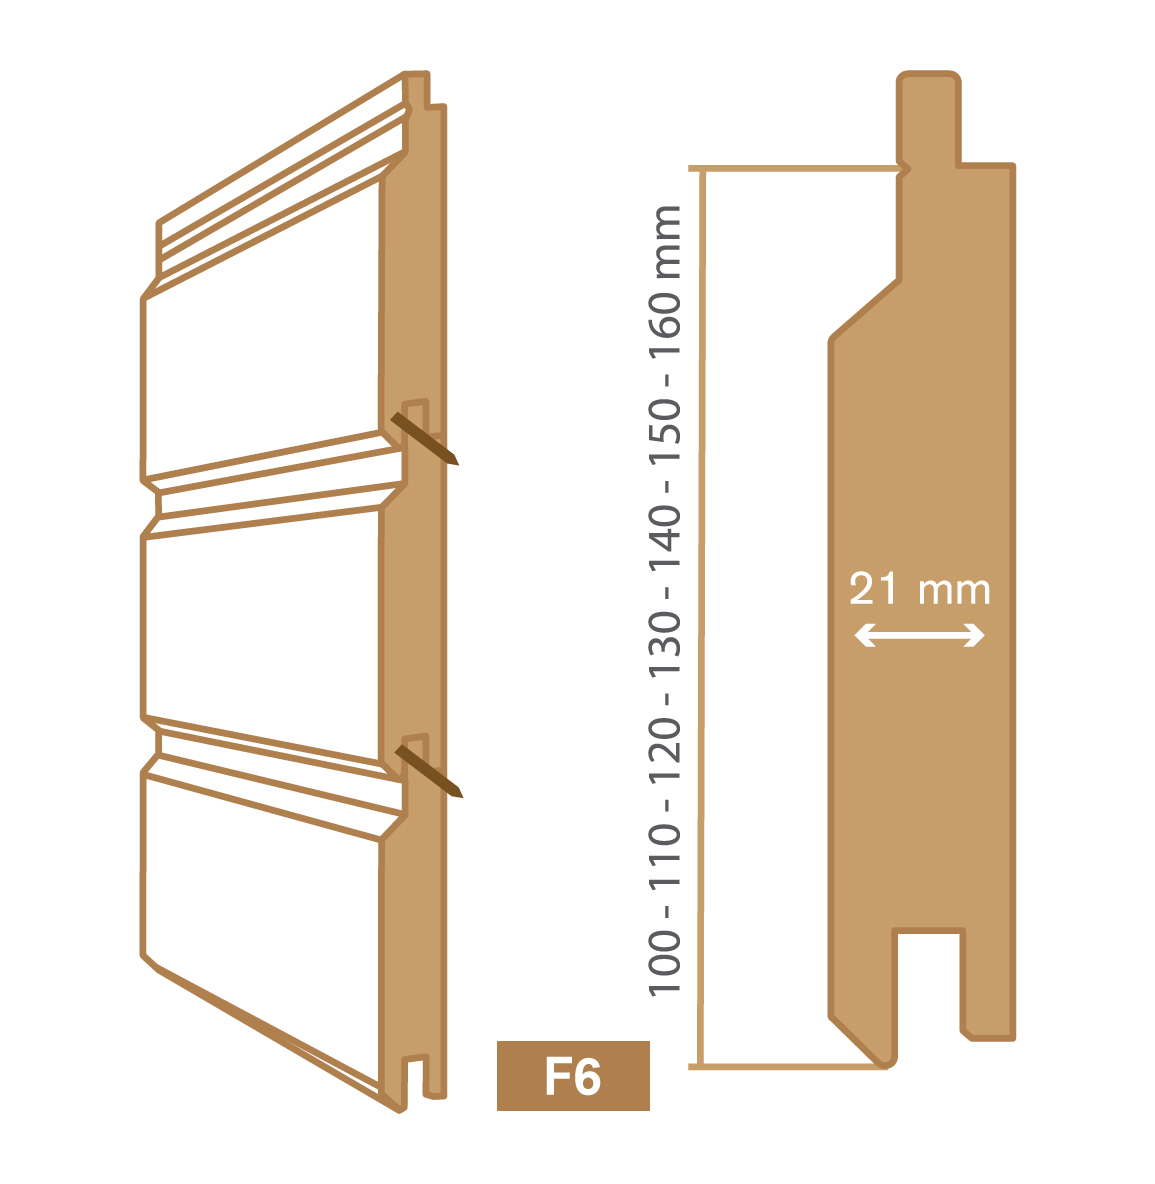 wooden cladding f6 type